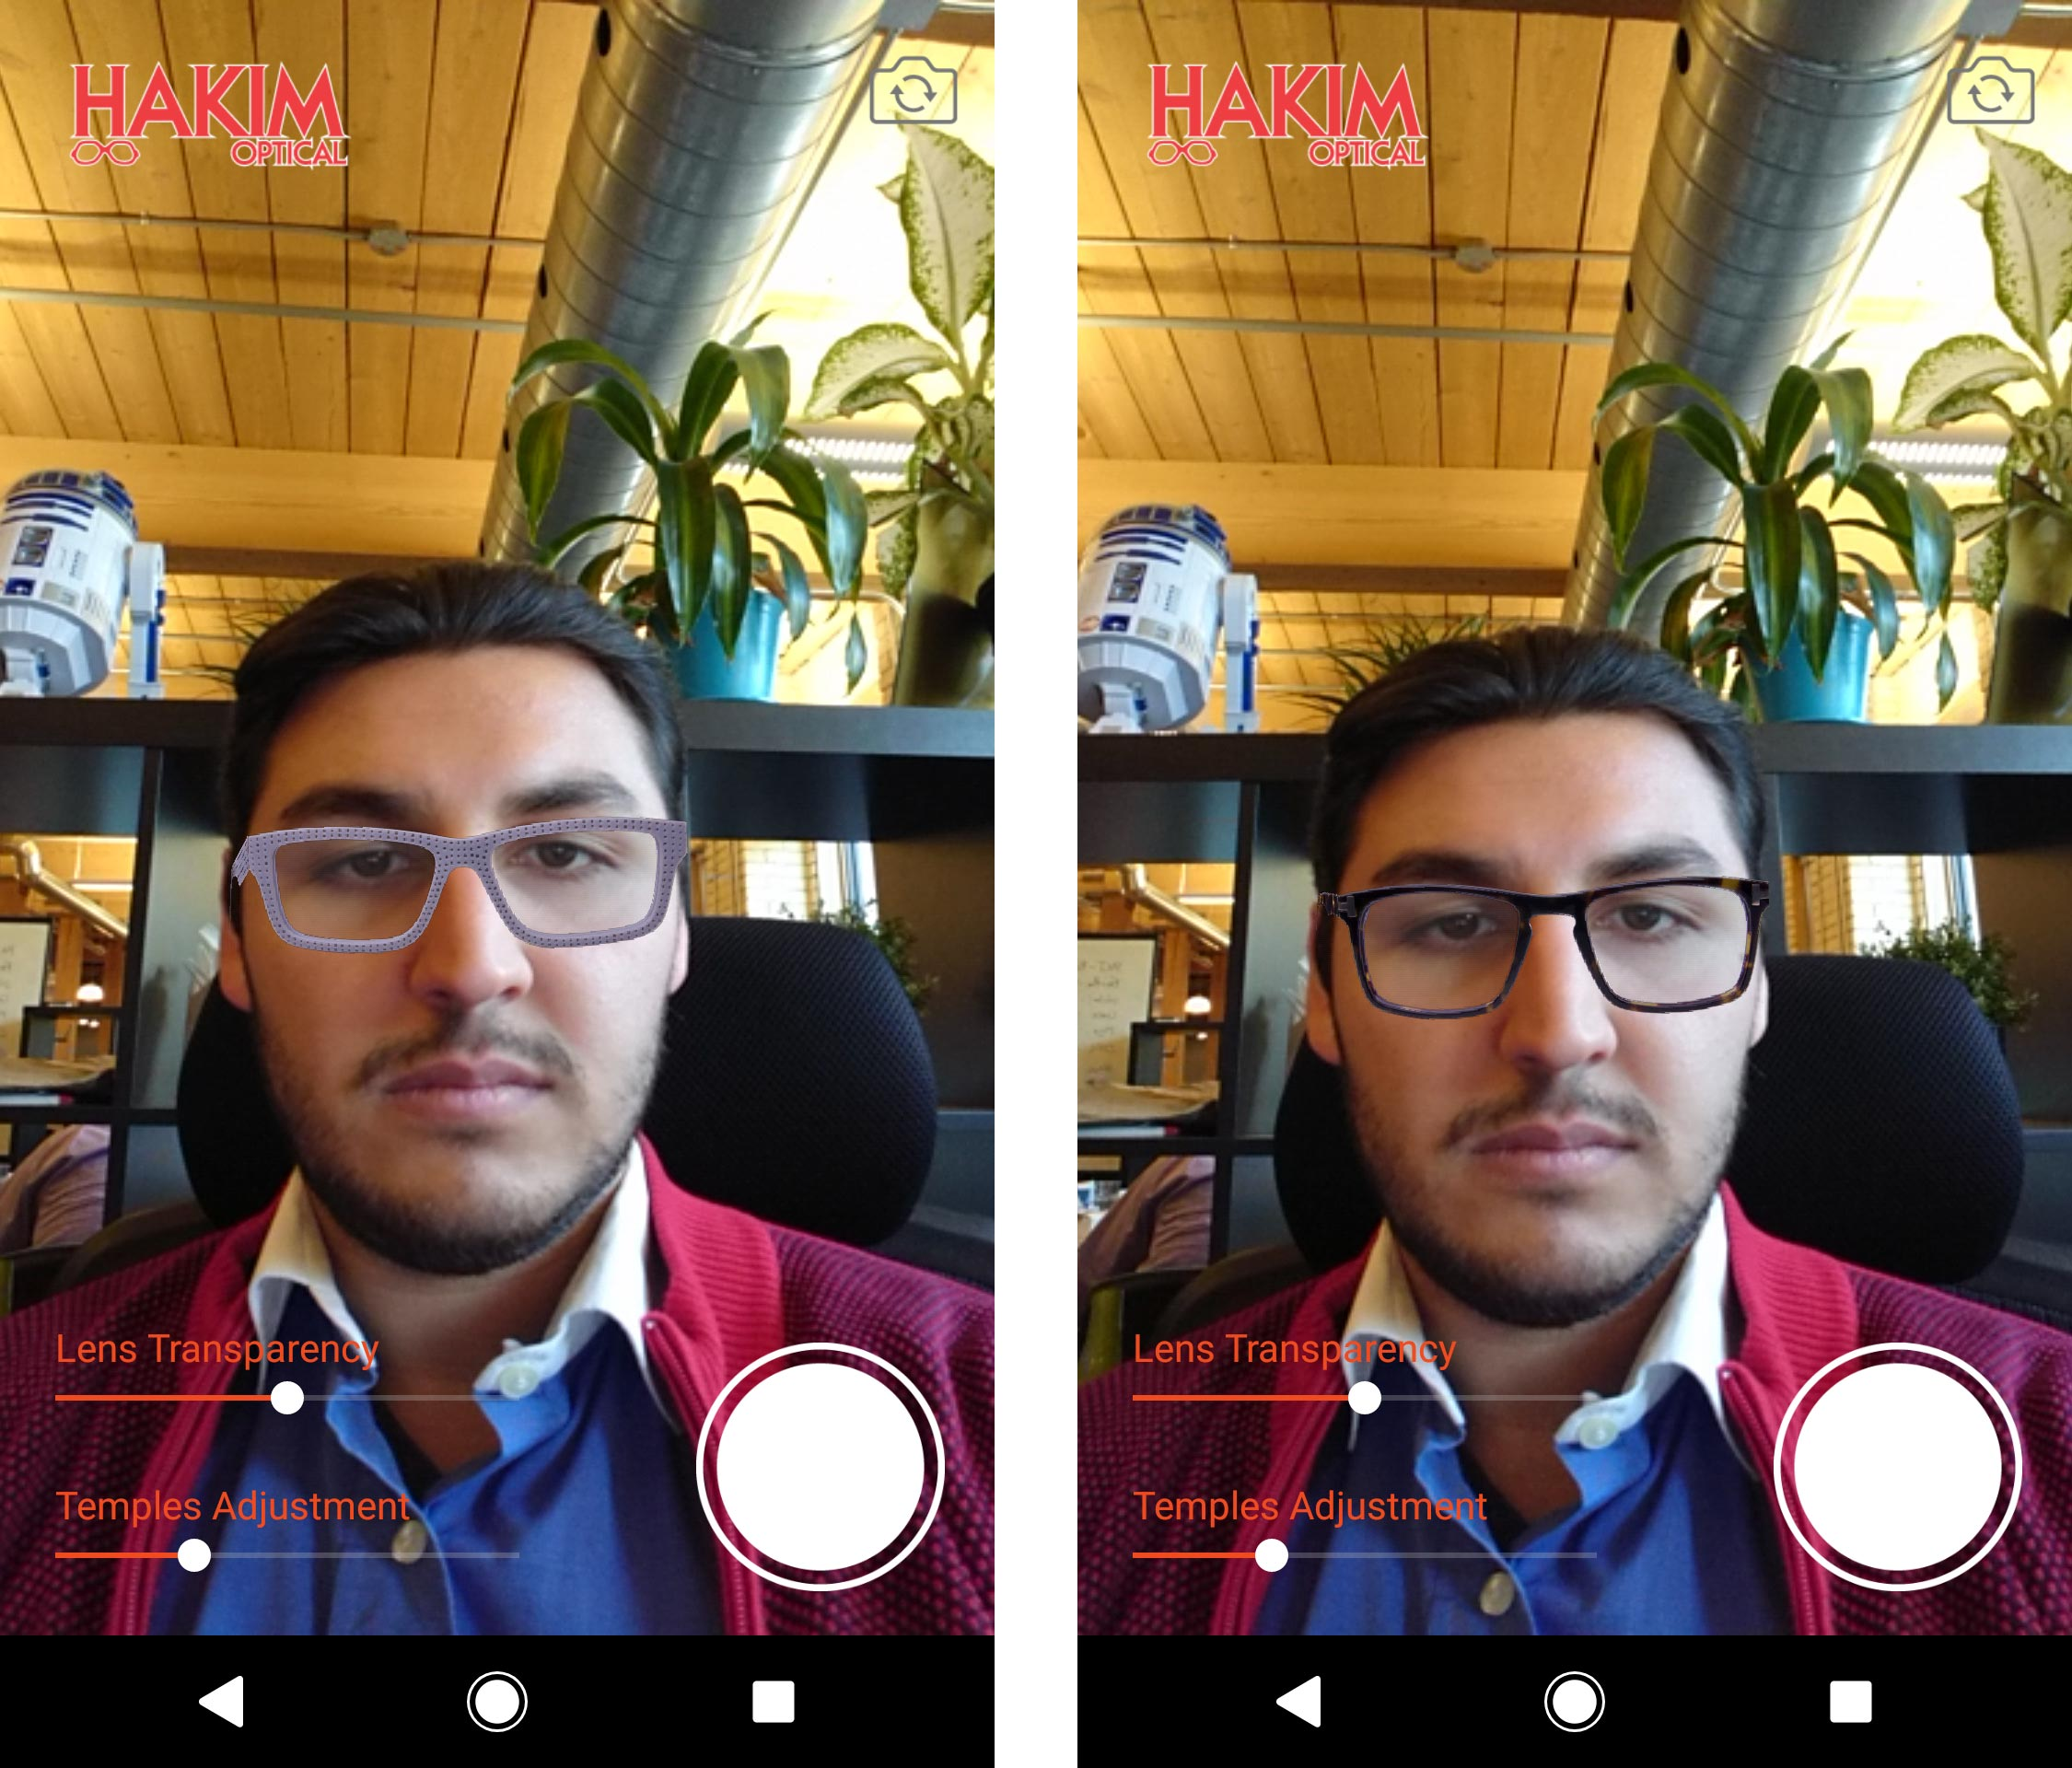 3010b1fdbe Hakim Optical launches augmented reality app that lets users try on ...